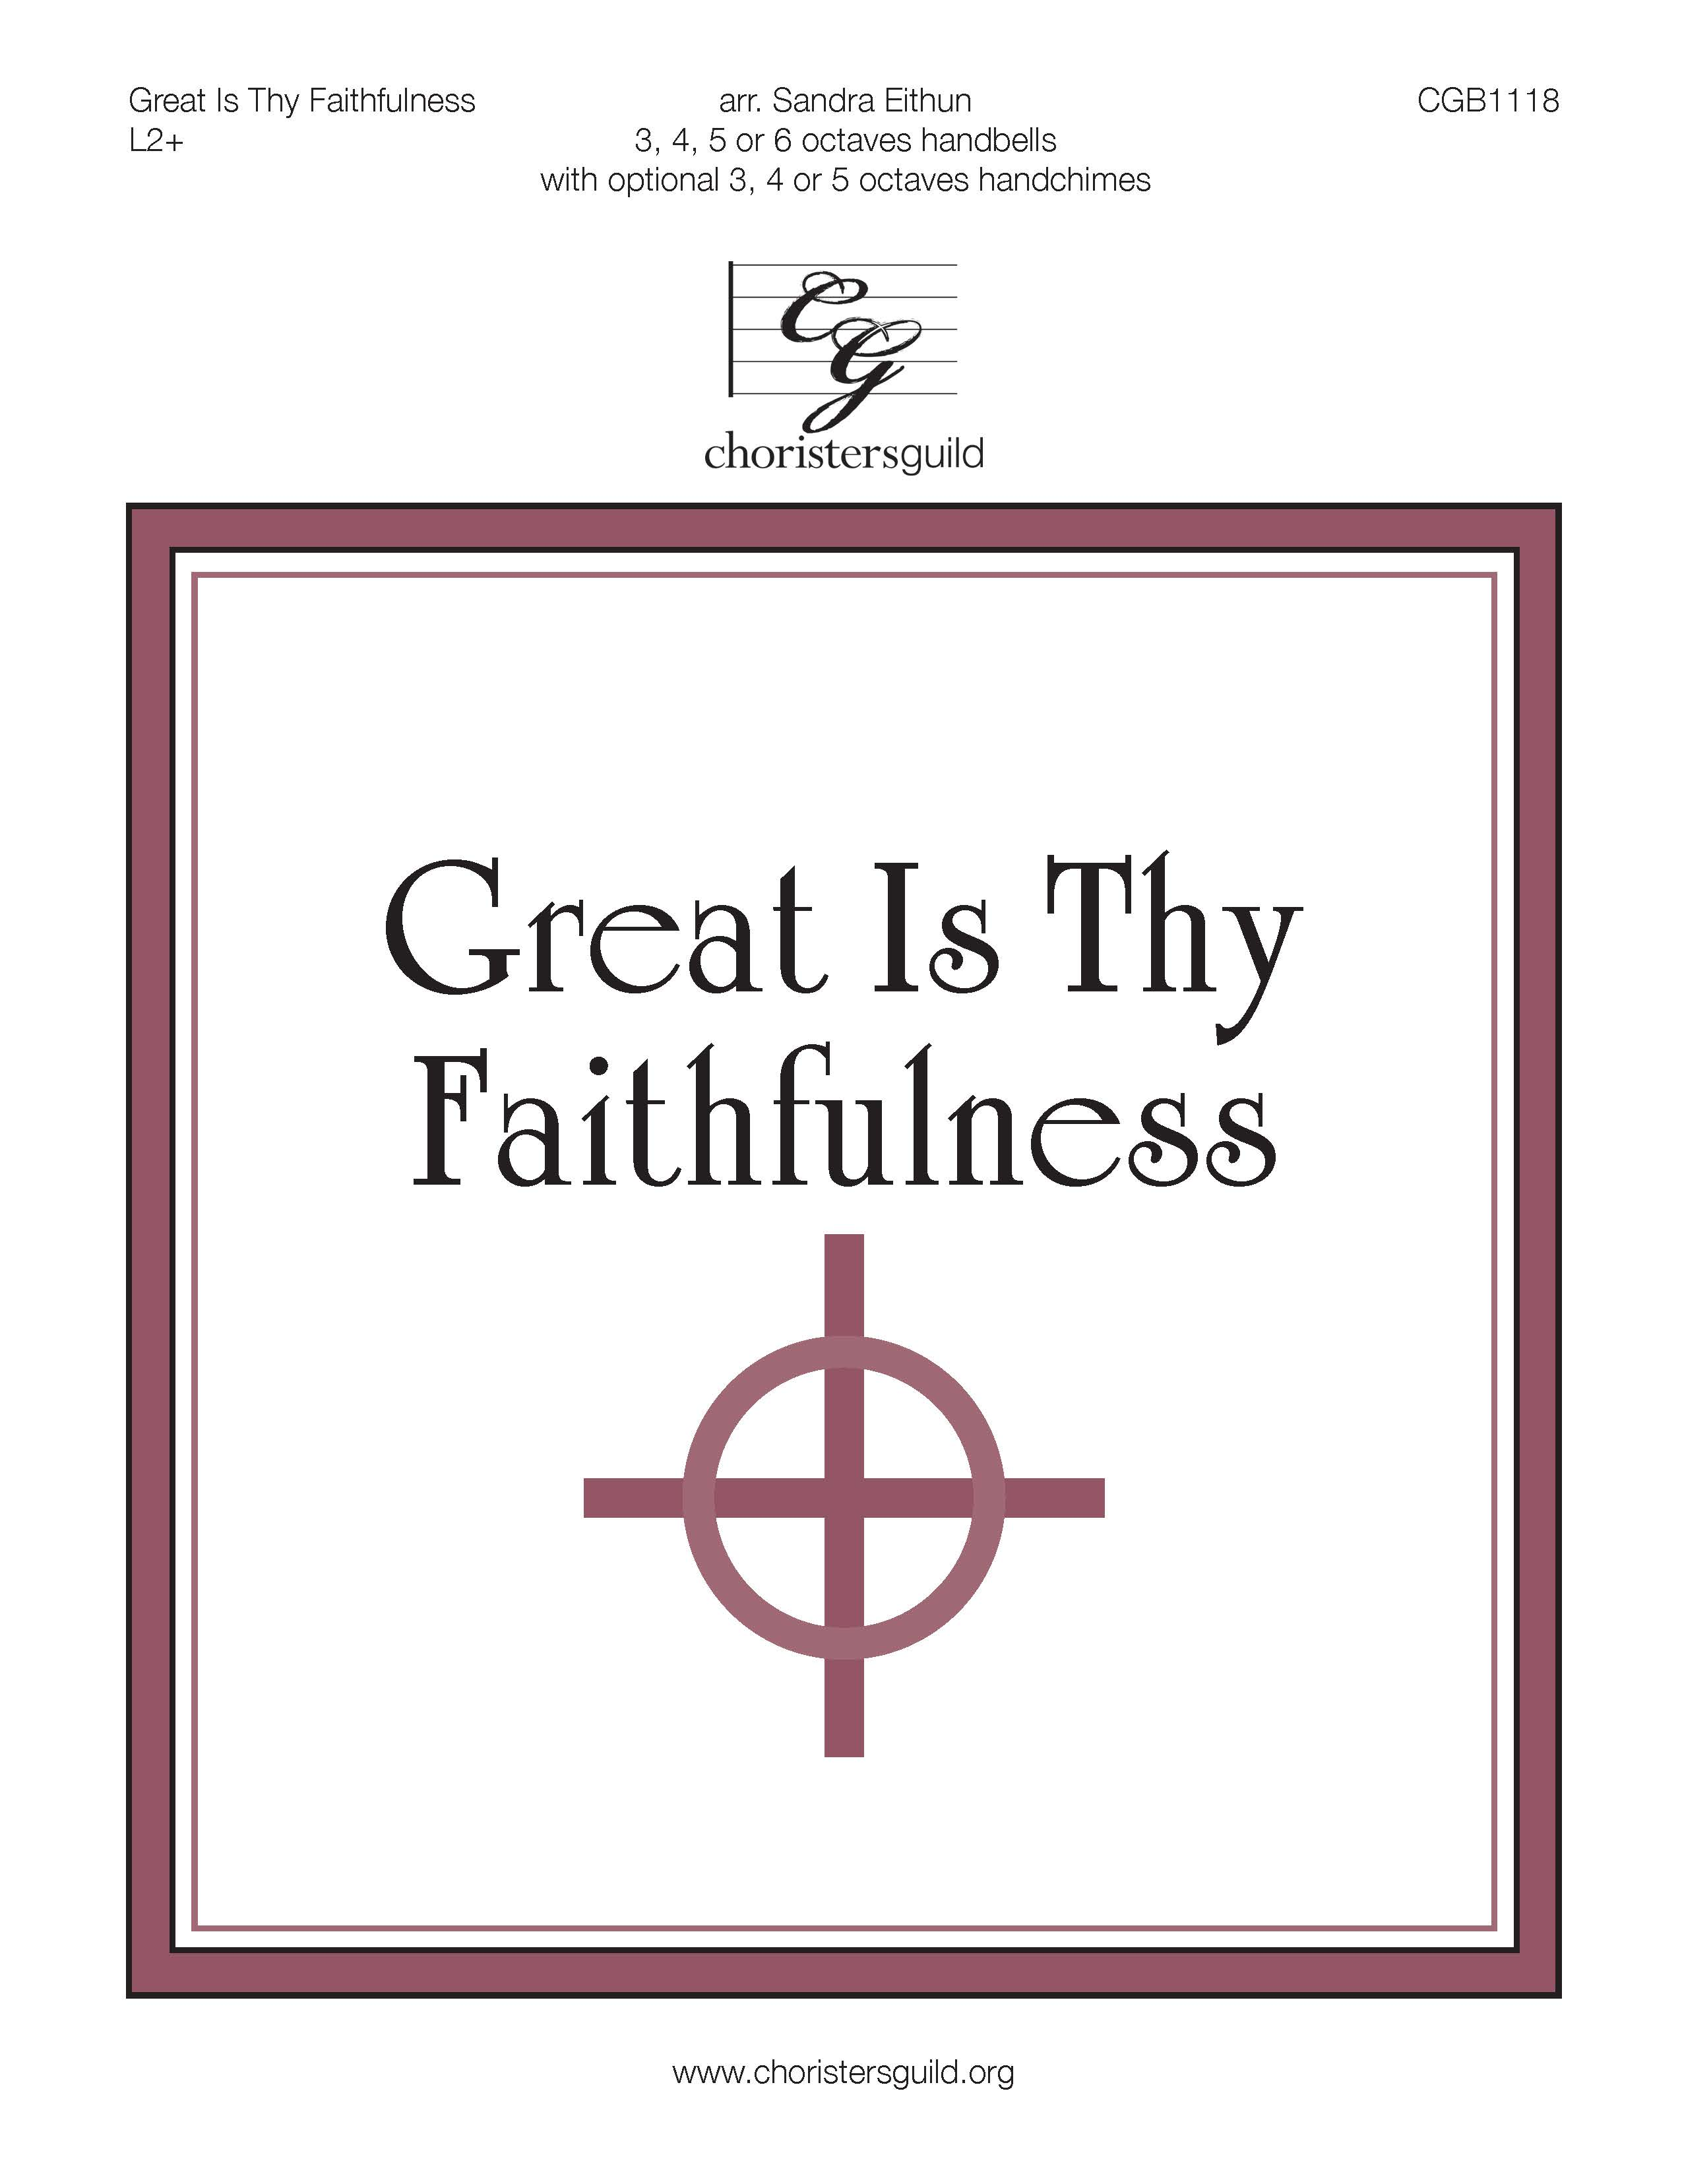 Great Is Thy Faithfulness - 3-6 octaves